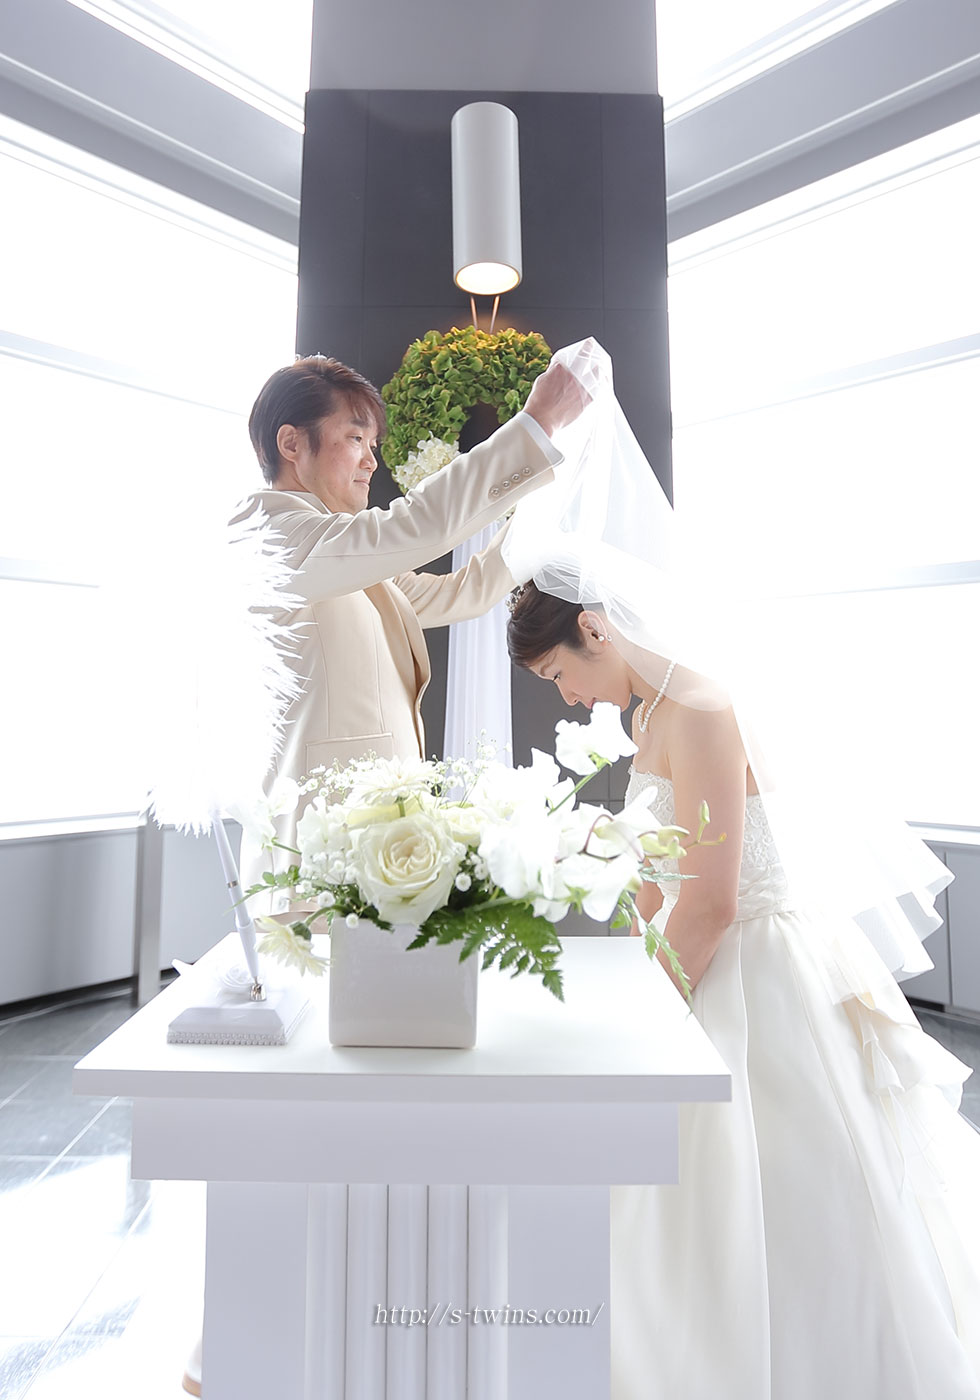 16mar26wedding_igarashitei_yui06